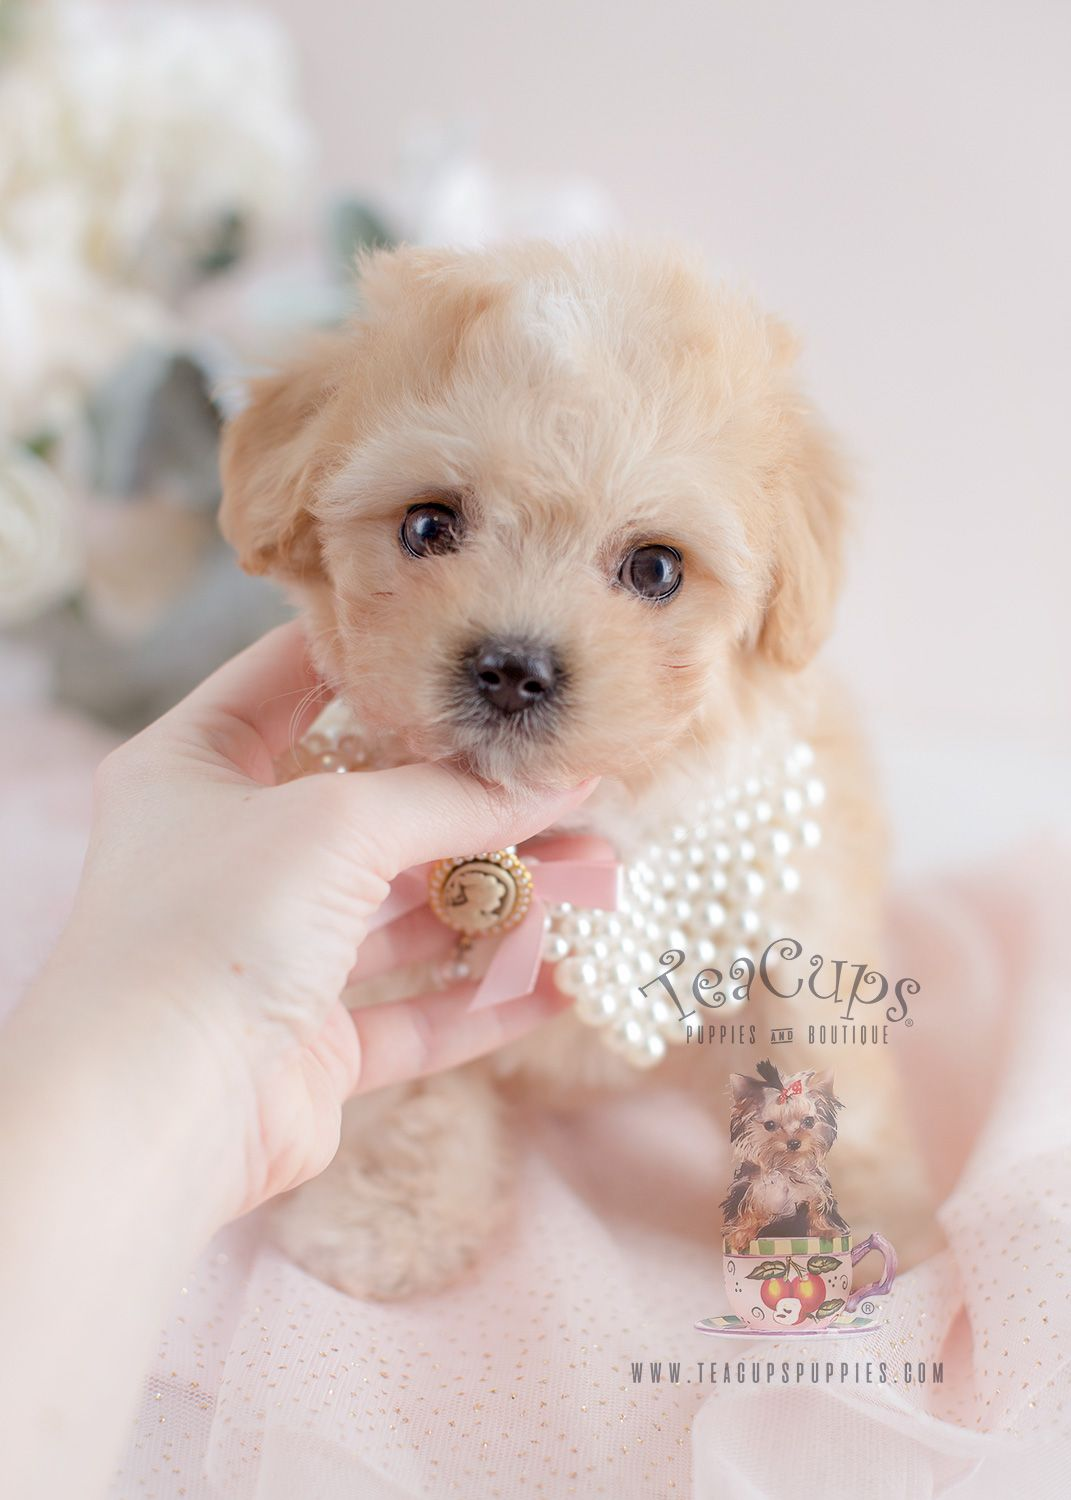 For Sale 058 Teacup Puppies Maltipoo Puppy Teacup Puppies Maltipoo Puppy Teacup Puppies For Sale